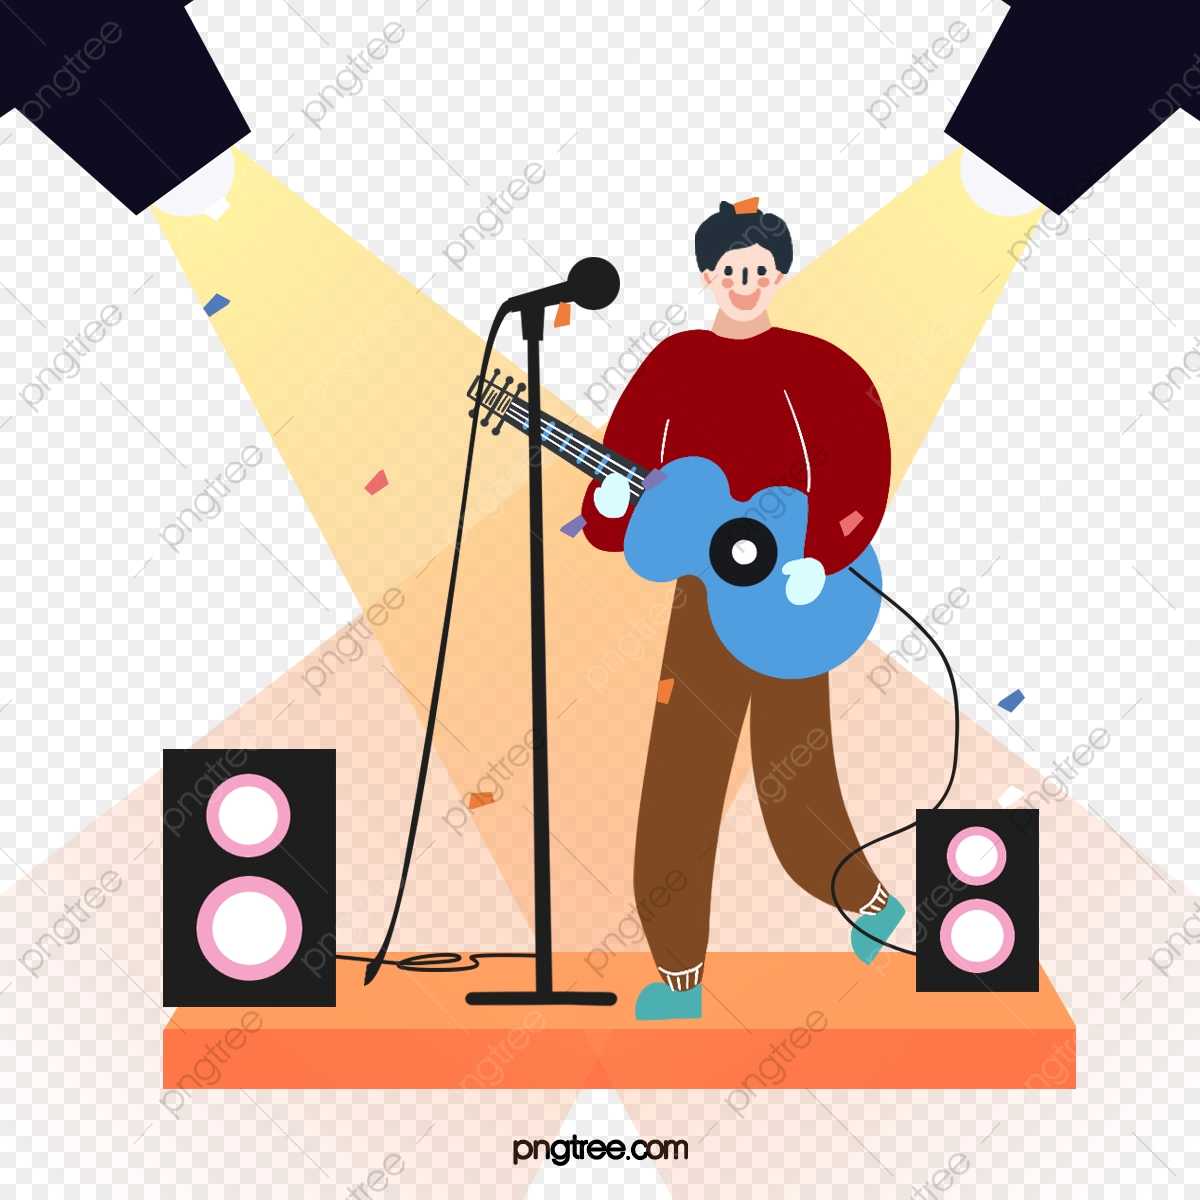 Cartoon Hand Drawn Stage Singing Performance Illustration Stage Sing Kpop Music Png Transparent Clipart Image And Psd File For Free Download